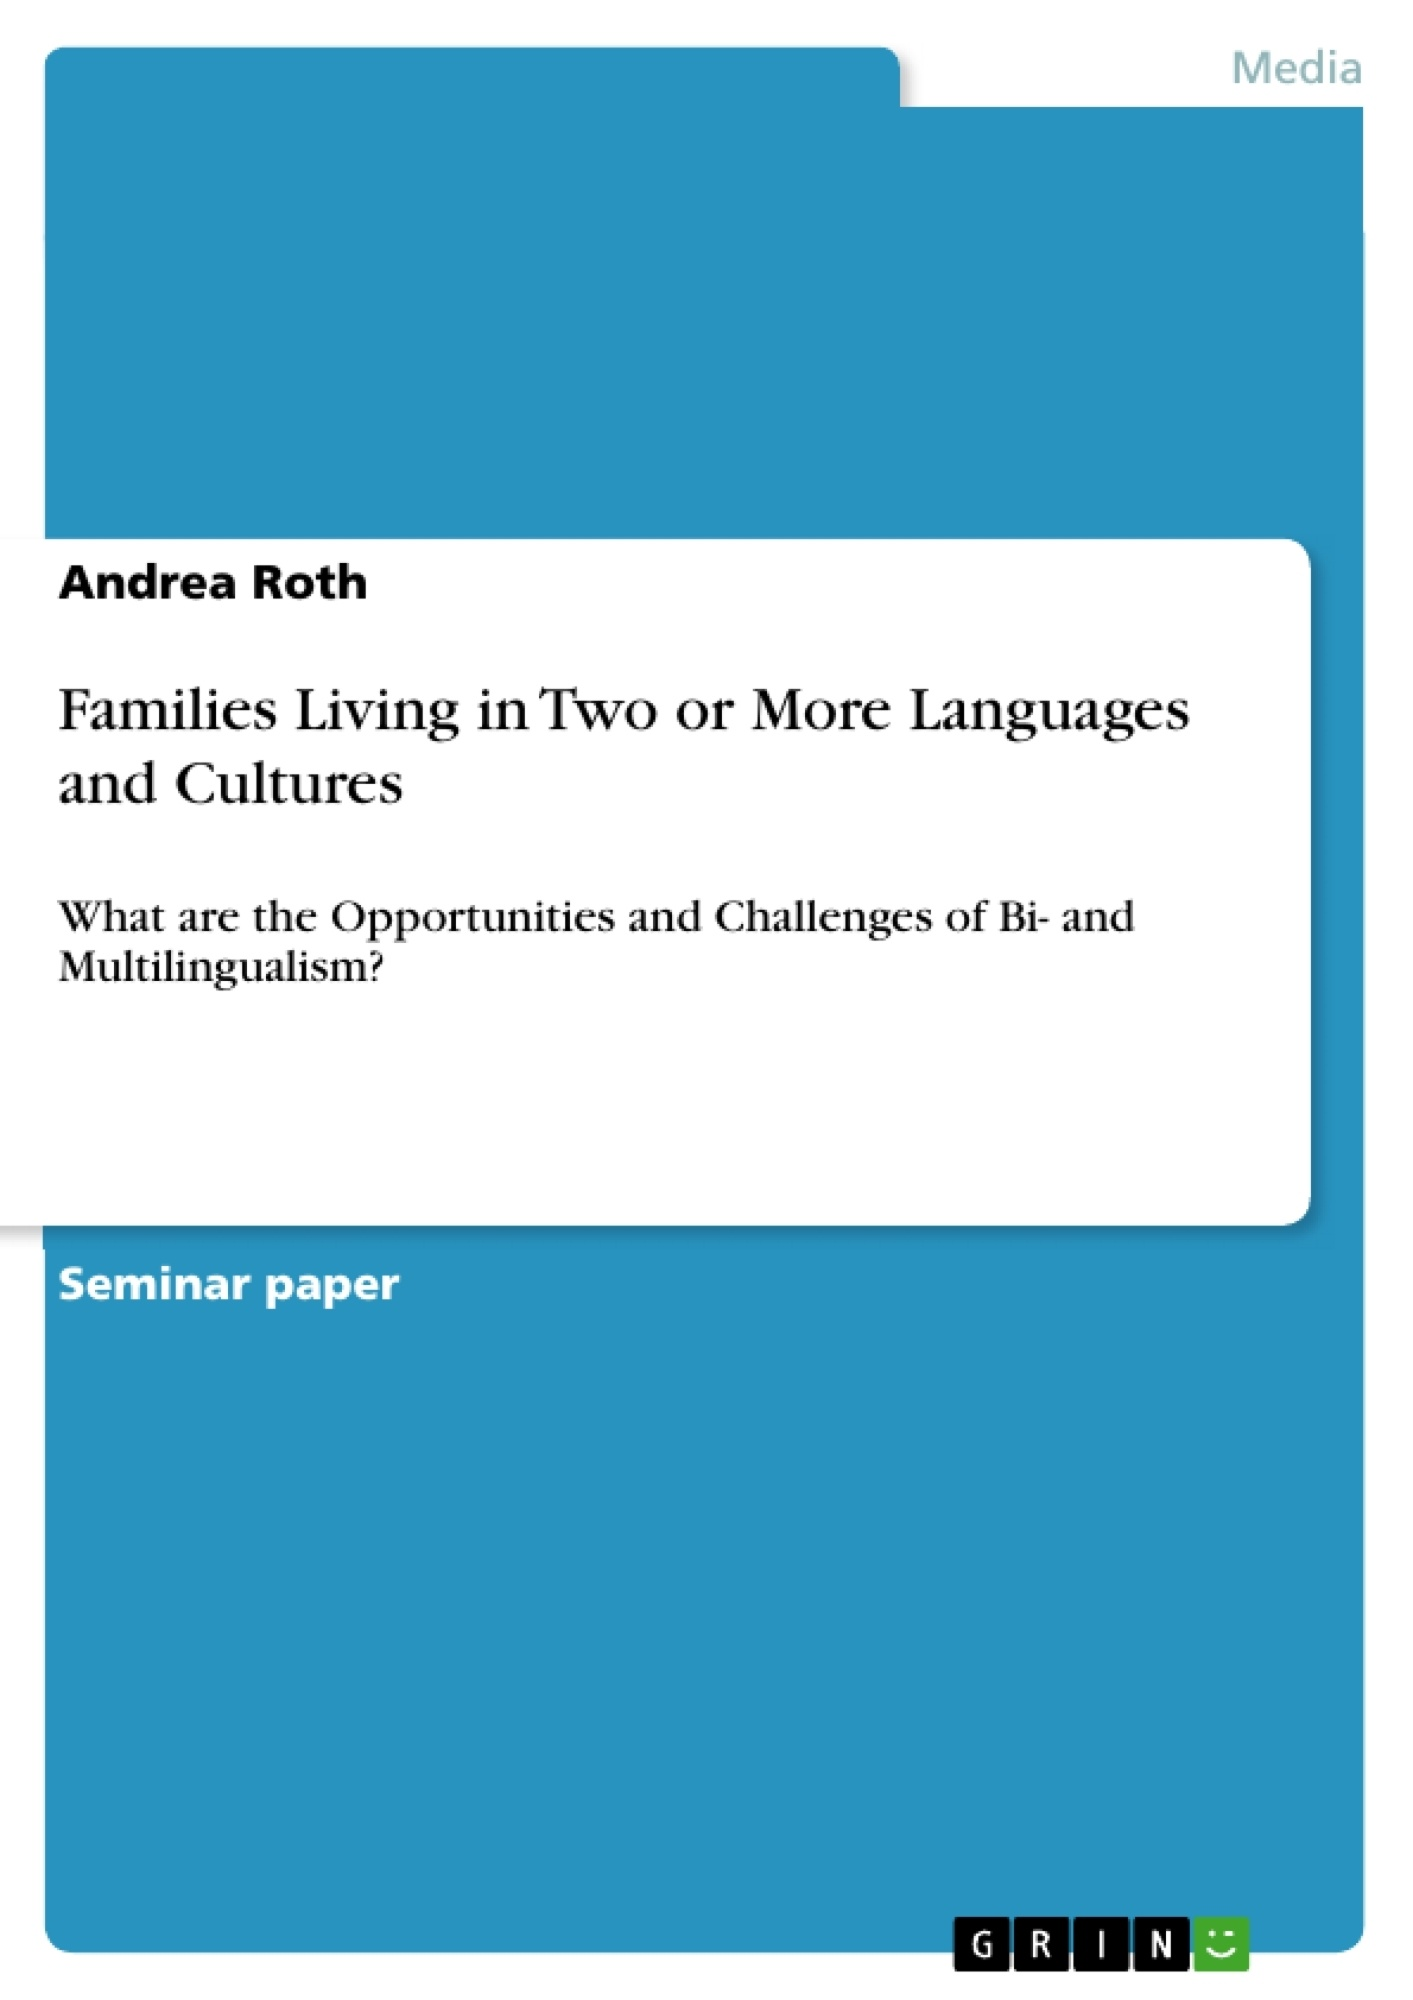 Title: Families Living in Two or More Languages and Cultures